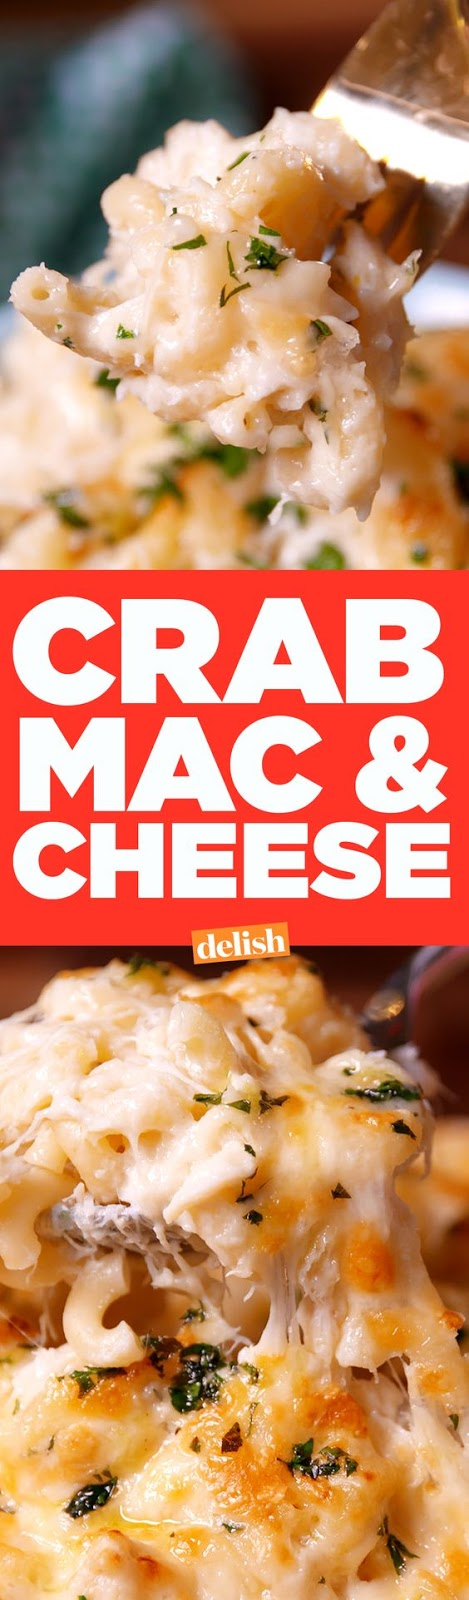 ★★★★☆ 7561 ratings | Crab Mac & Cheese #HEALTHYFOOD #EASYRECIPES #DINNER #LAUCH #DELICIOUS #EASY #HOLIDAYS #RECIPE #Crab #Mac #Cheese